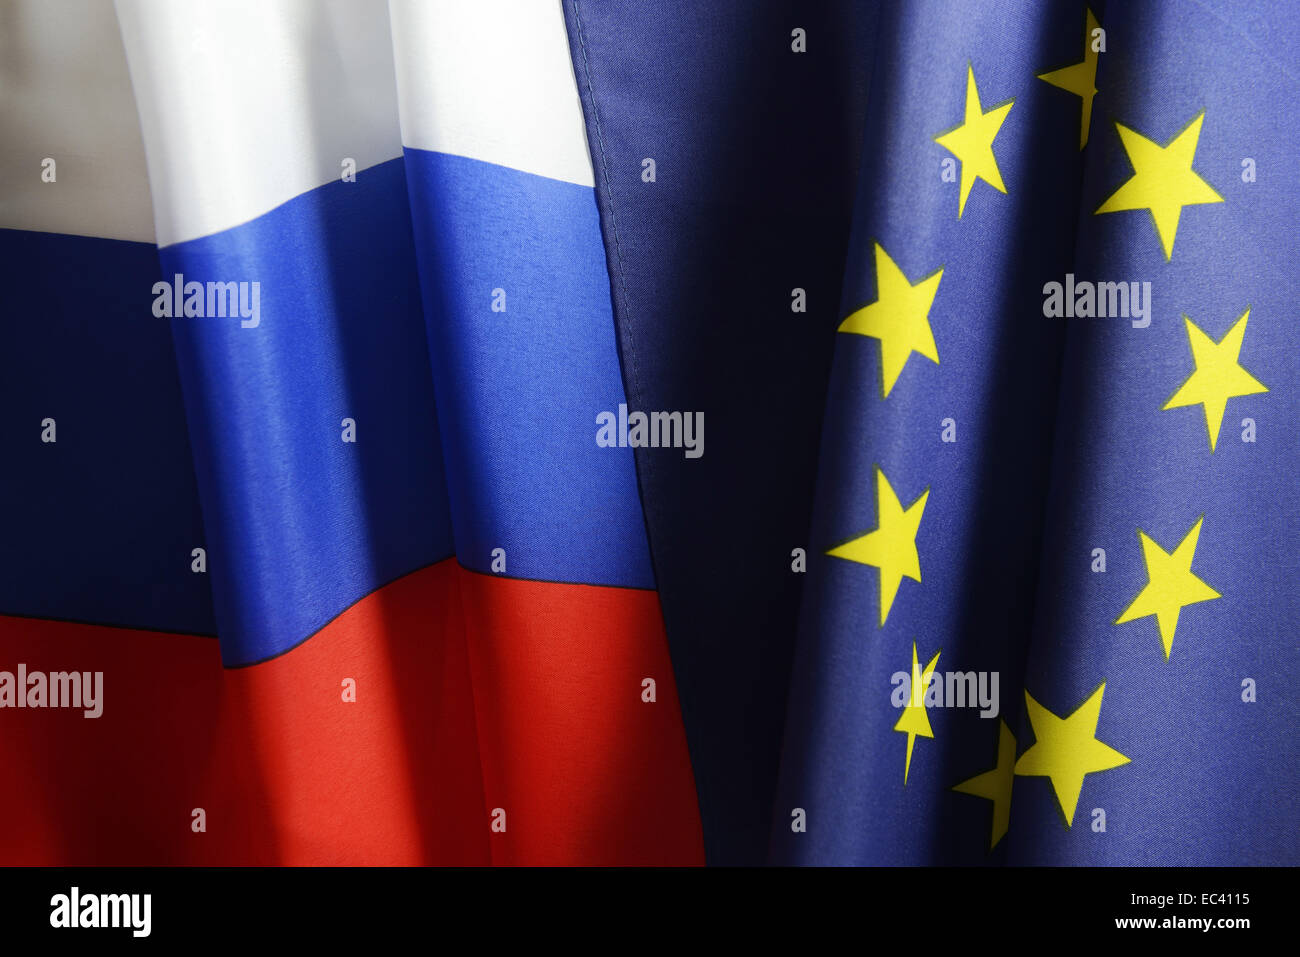 Flags of Russia and the European Union - Stock Image